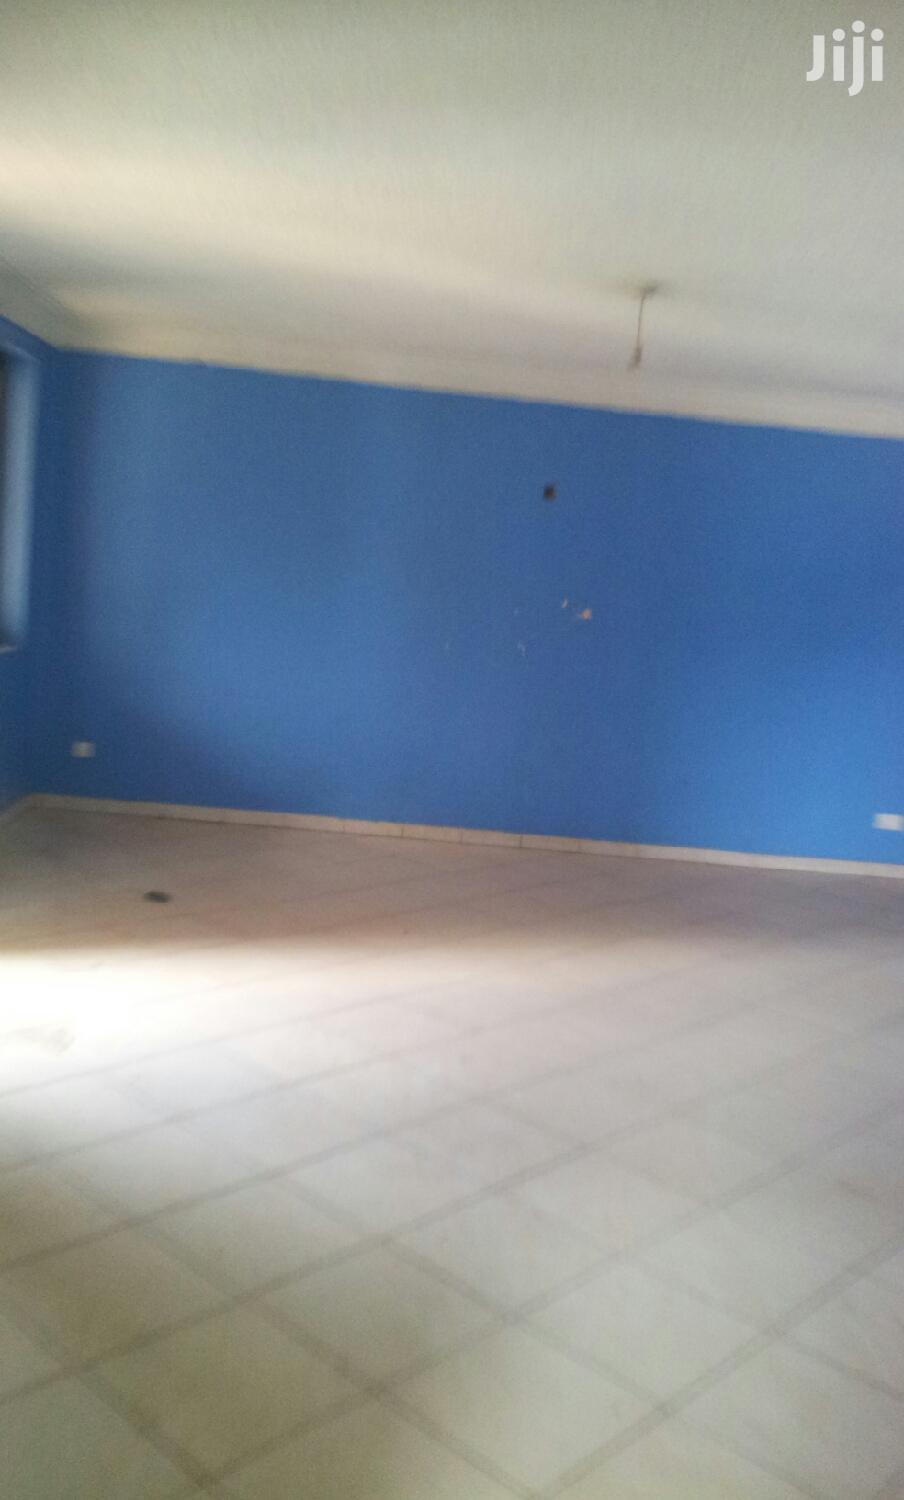 Wandegeya 3 Bedrooms Apartment for Rent | Houses & Apartments For Rent for sale in Kampala, Central Region, Uganda